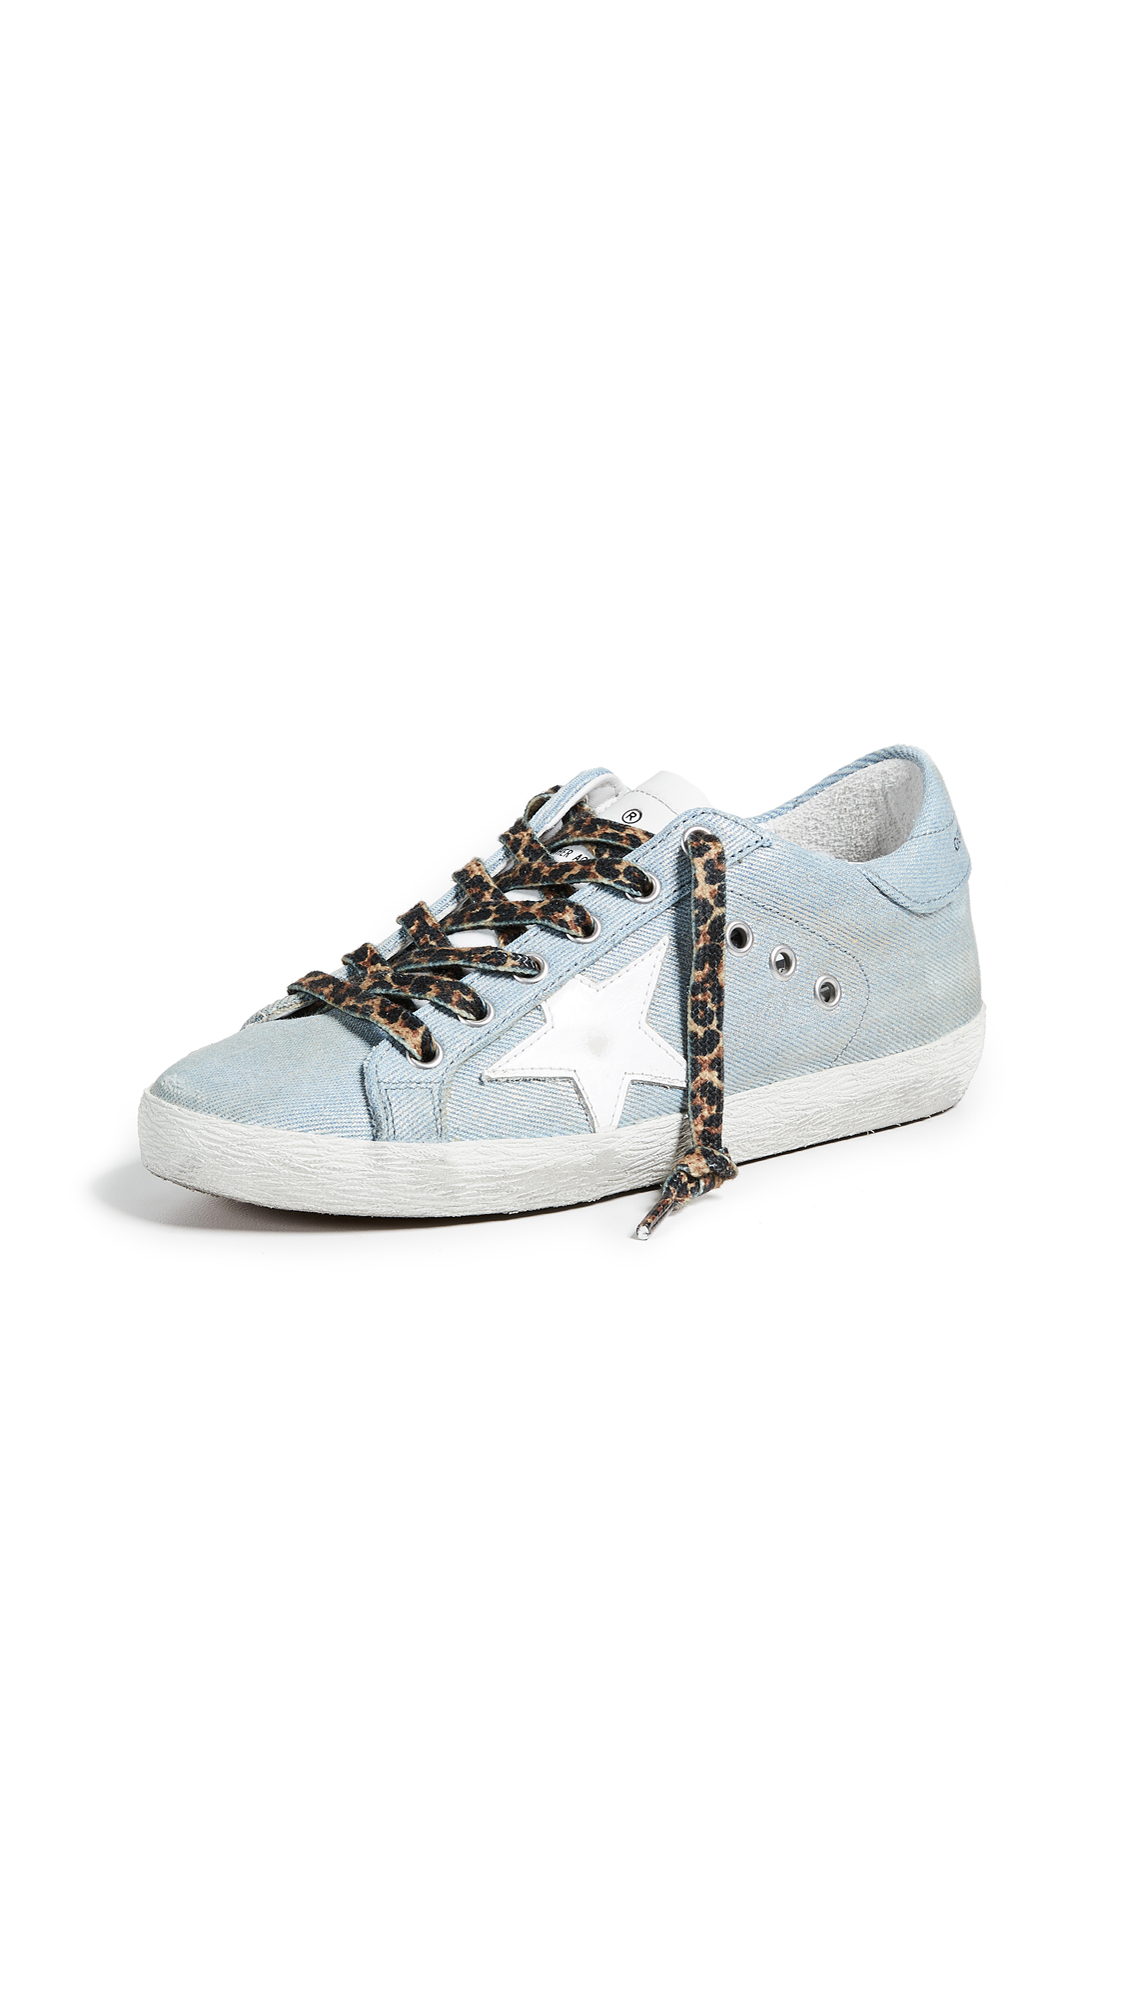 Golden Goose Superstar Sneakers - Shiny Jeans/White